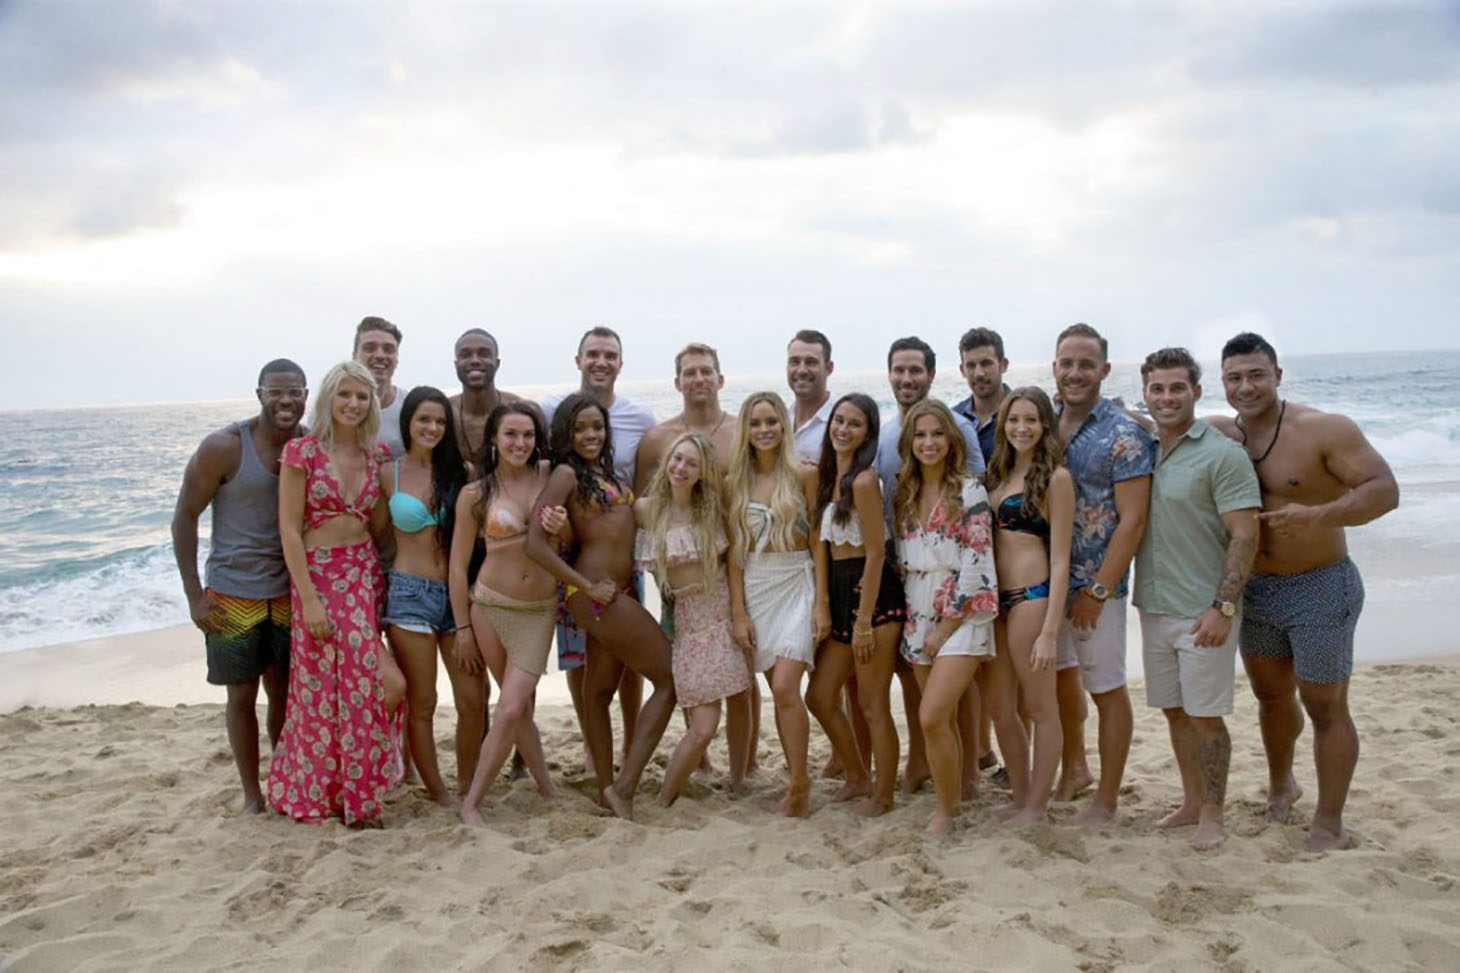 Jiillian Harris Bachelor In Paradise Recap